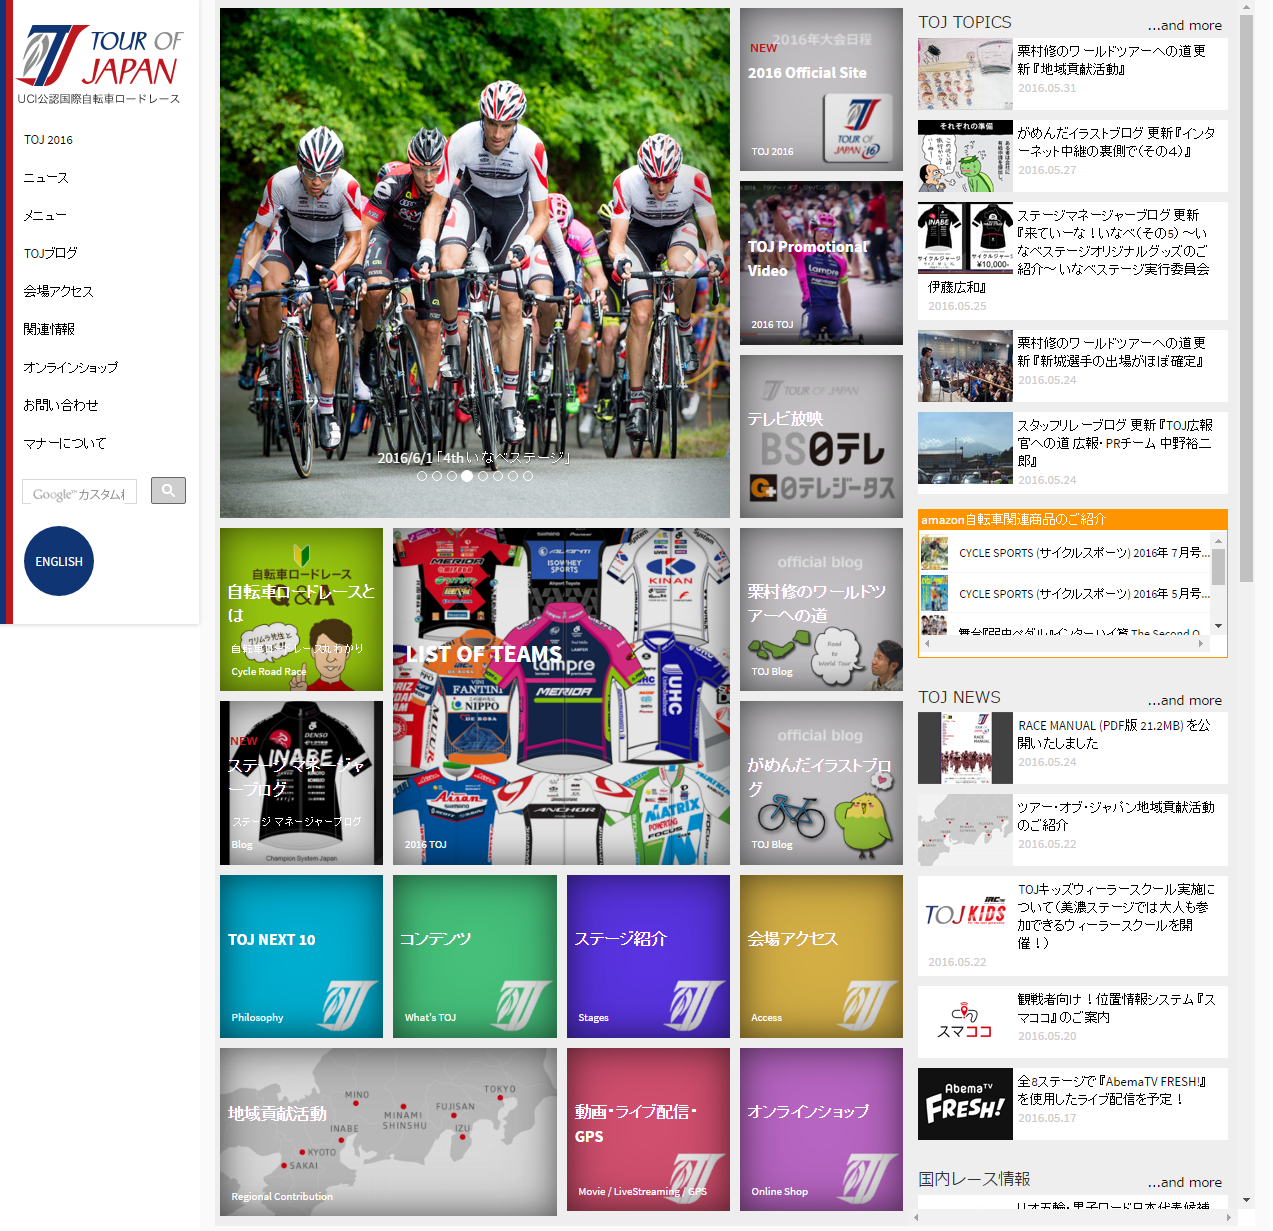 TOUR OF JAPAN Official Website